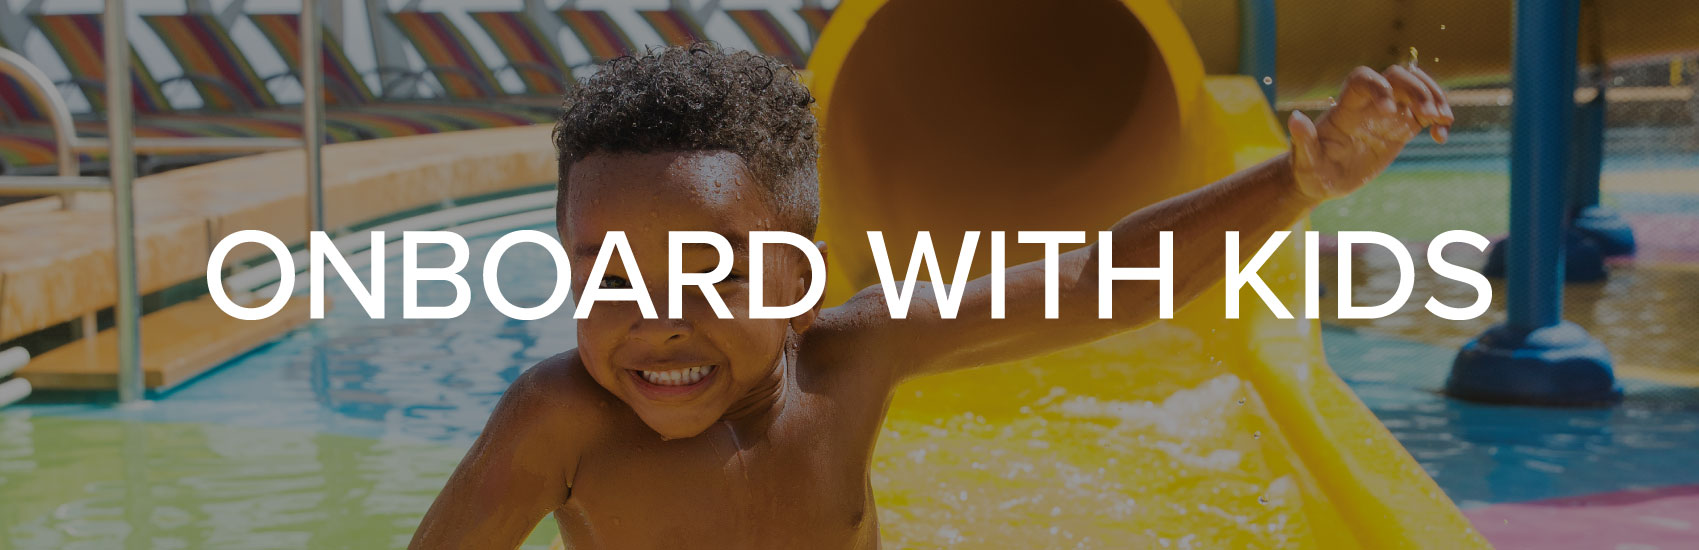 Royal Caribbean | Life onboard with Kids